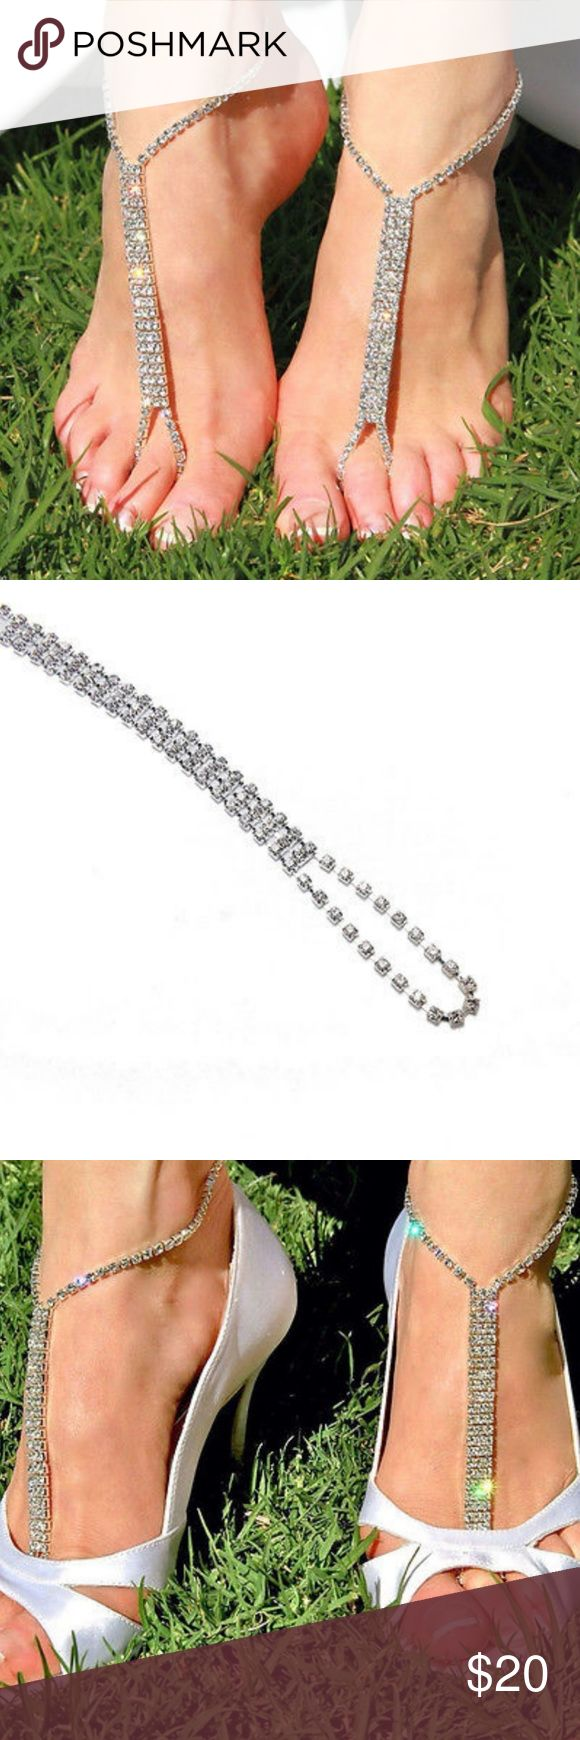 """Rhinestone Crystal Bare Foot Sandal Anklet Rhinestone Crystal Bare Foot Sandal Anklet  Delicate, Elegant and beautiful. This barefoot sandal can be worn with or without shoes. Perfect for proms, parties, or anytime you want to add a bit of glamour. Adjustable around the ankle to 9"""" with claw clasp approximately 6"""" from ankle to toe. Jewelry"""